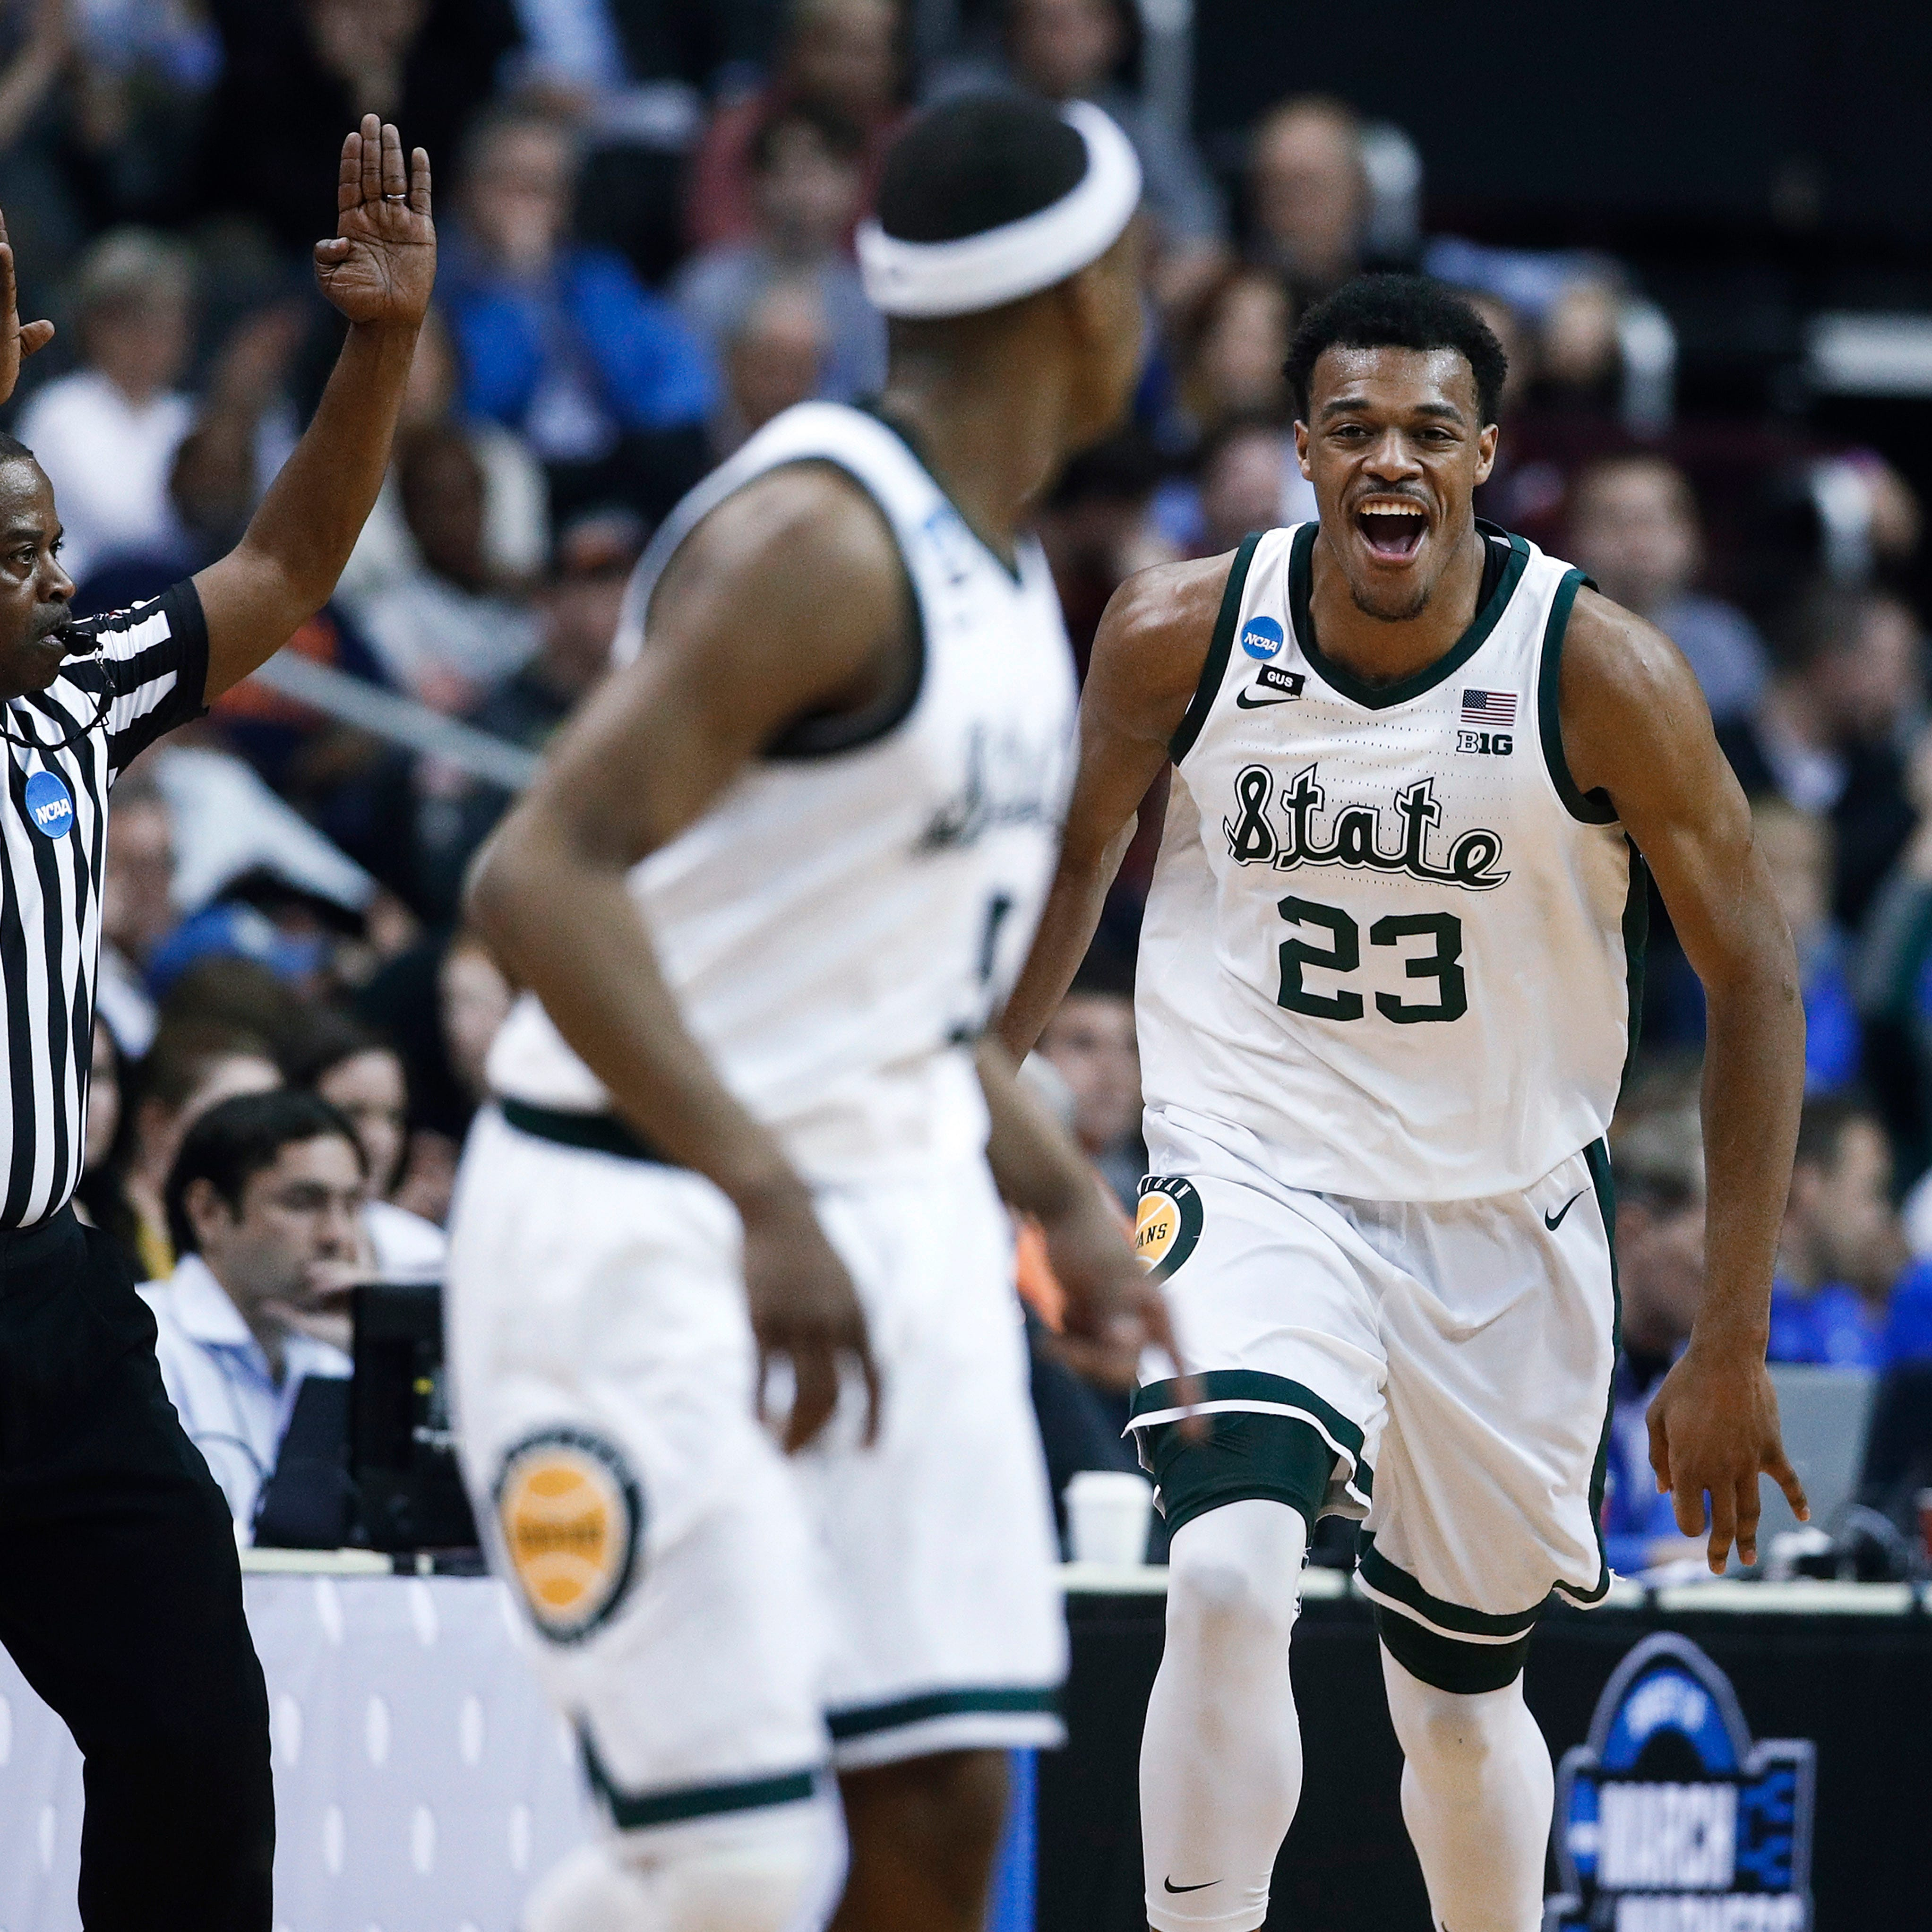 Instant reaction: Three quick takeaways from Michigan State's win over LSU